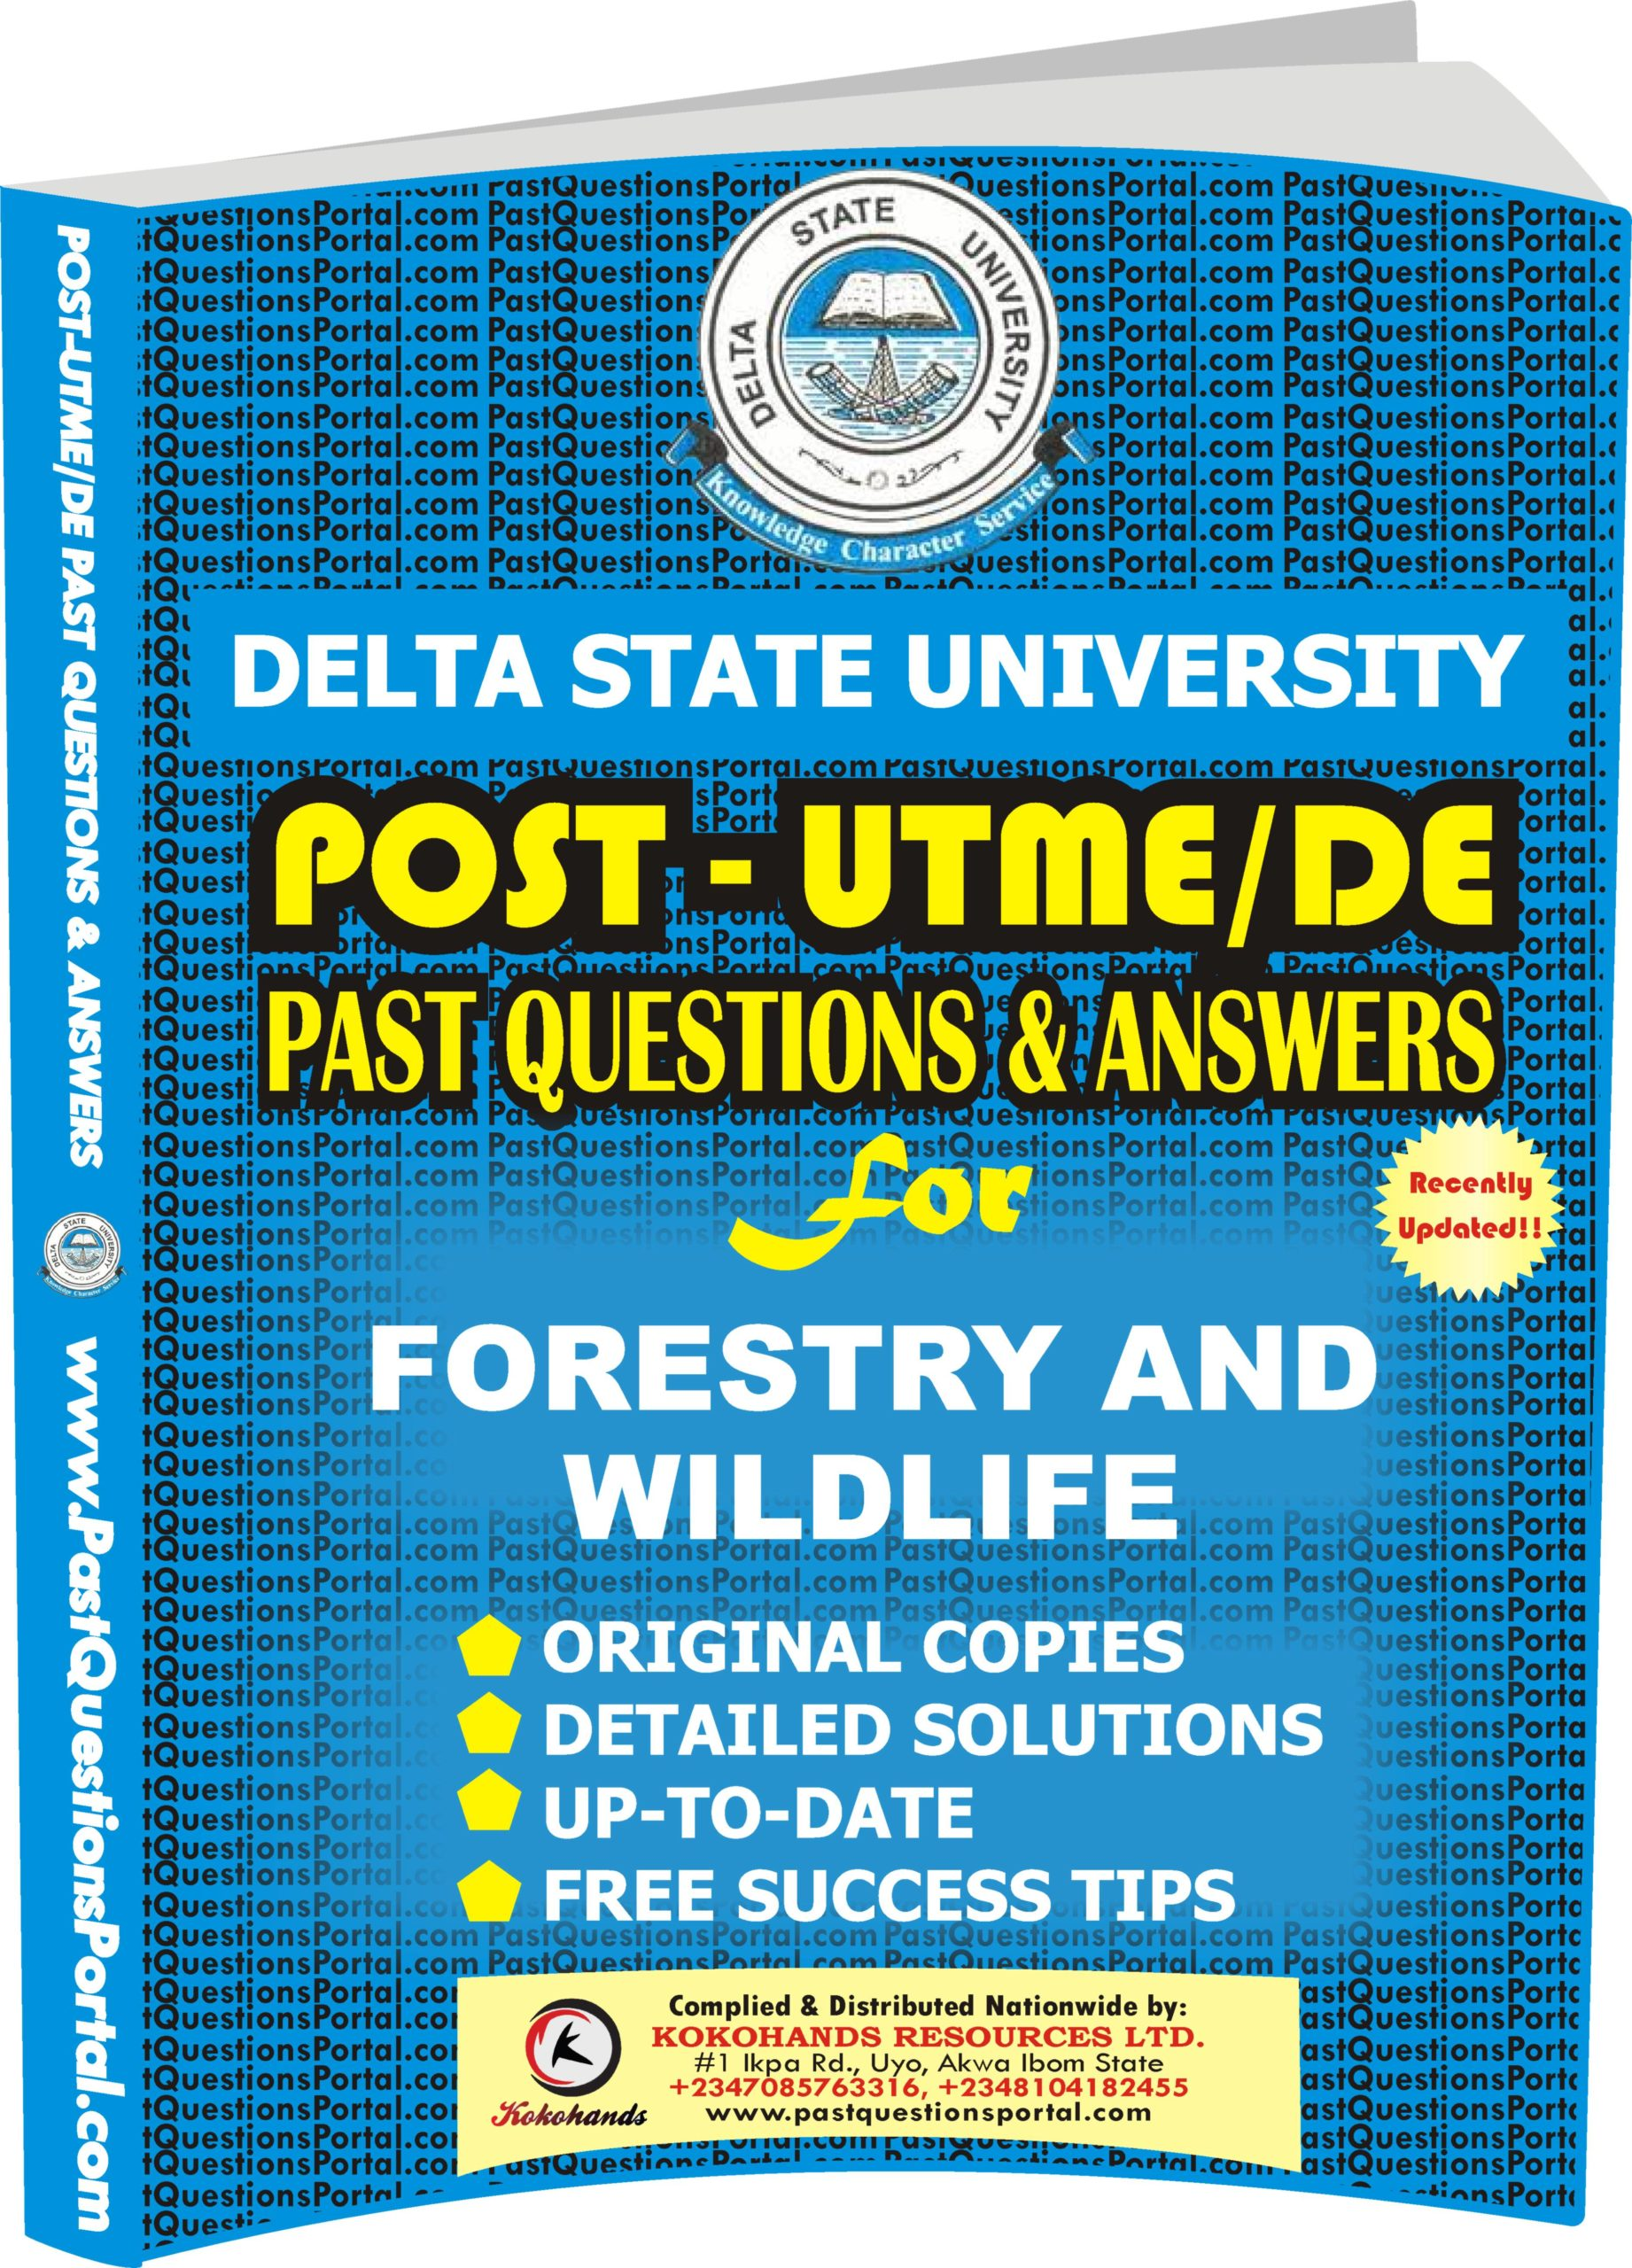 DELSU Post UTME Past Questions for FORESTRY AND WILDLIFE